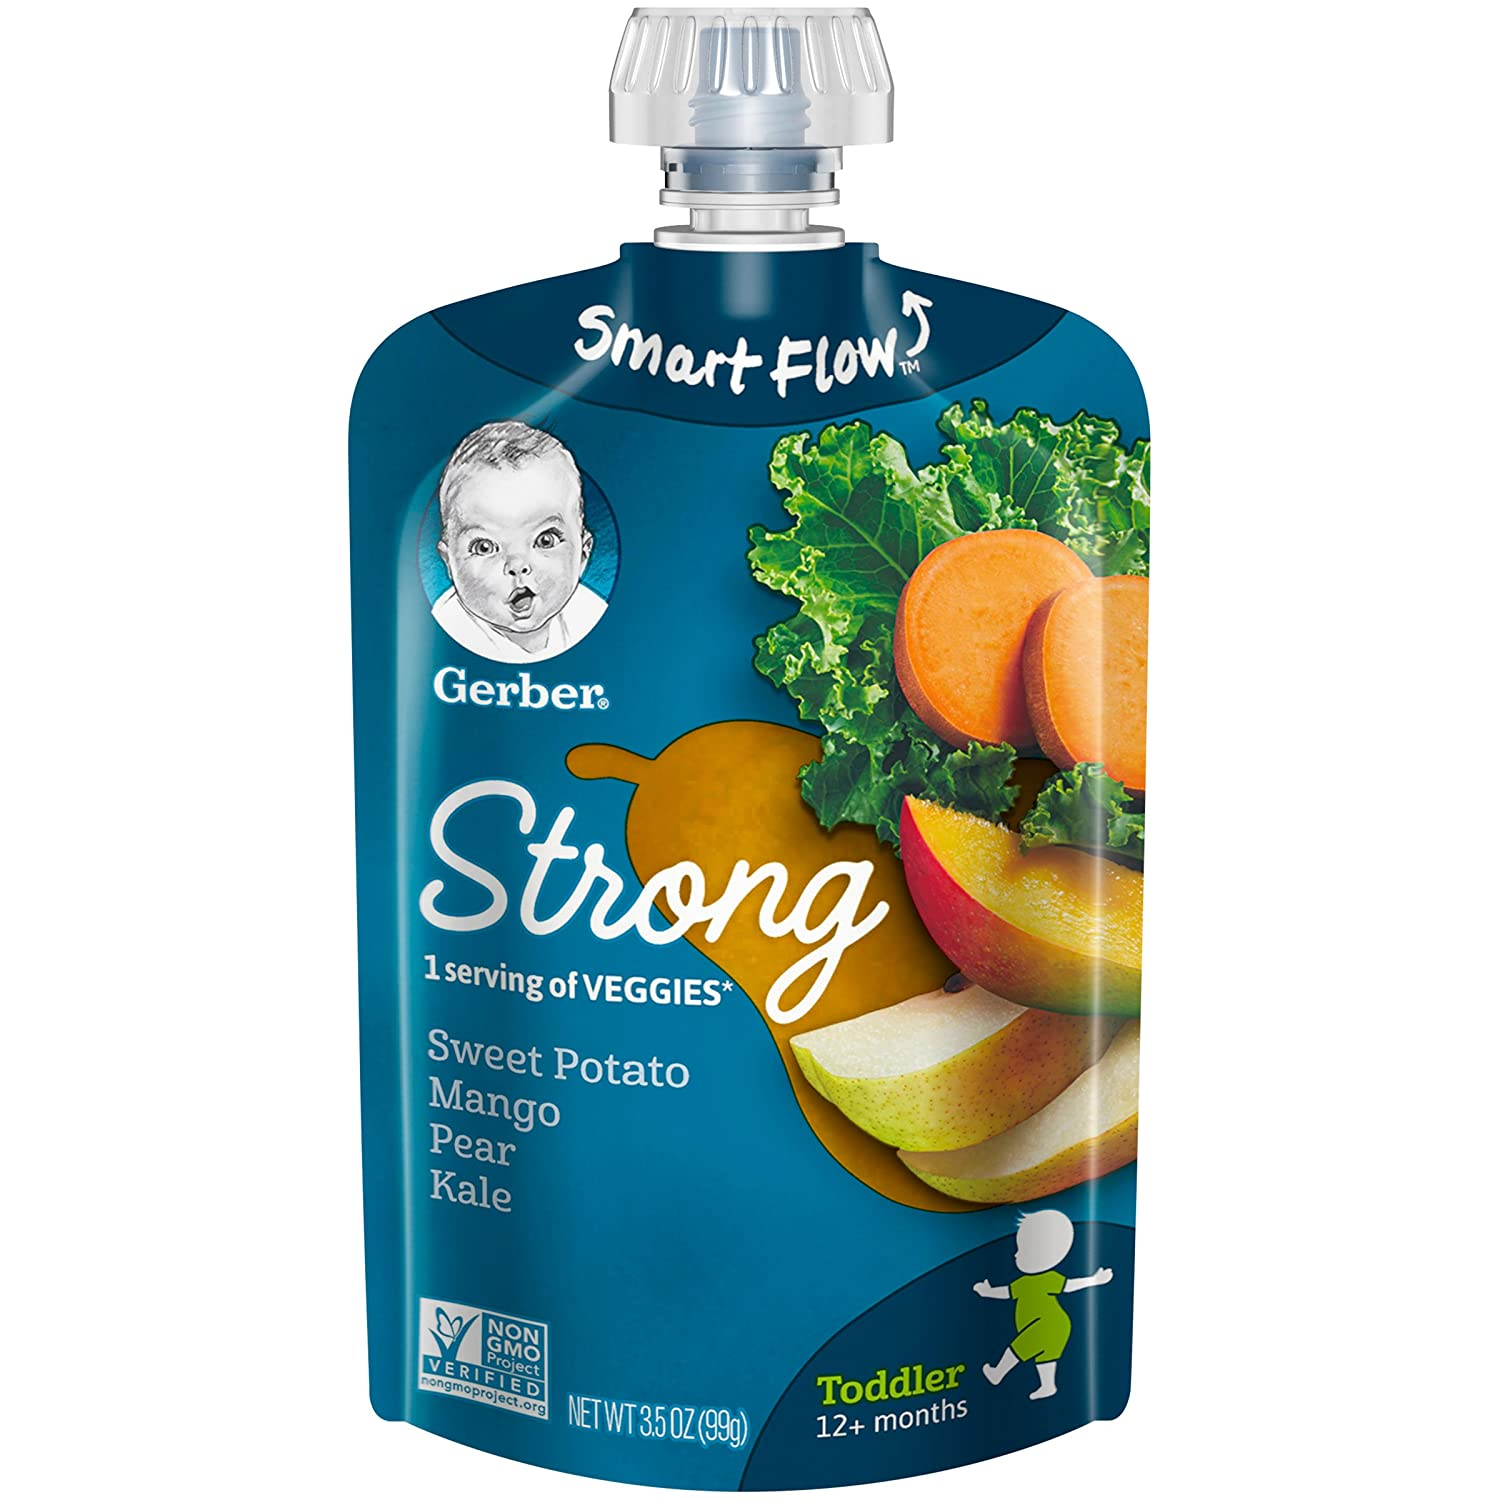 Gerber Purees, Sweet Potato, Mango, Pear & Kale Toddler Food, 3.5 Ounce Pouch (Pack of 12)